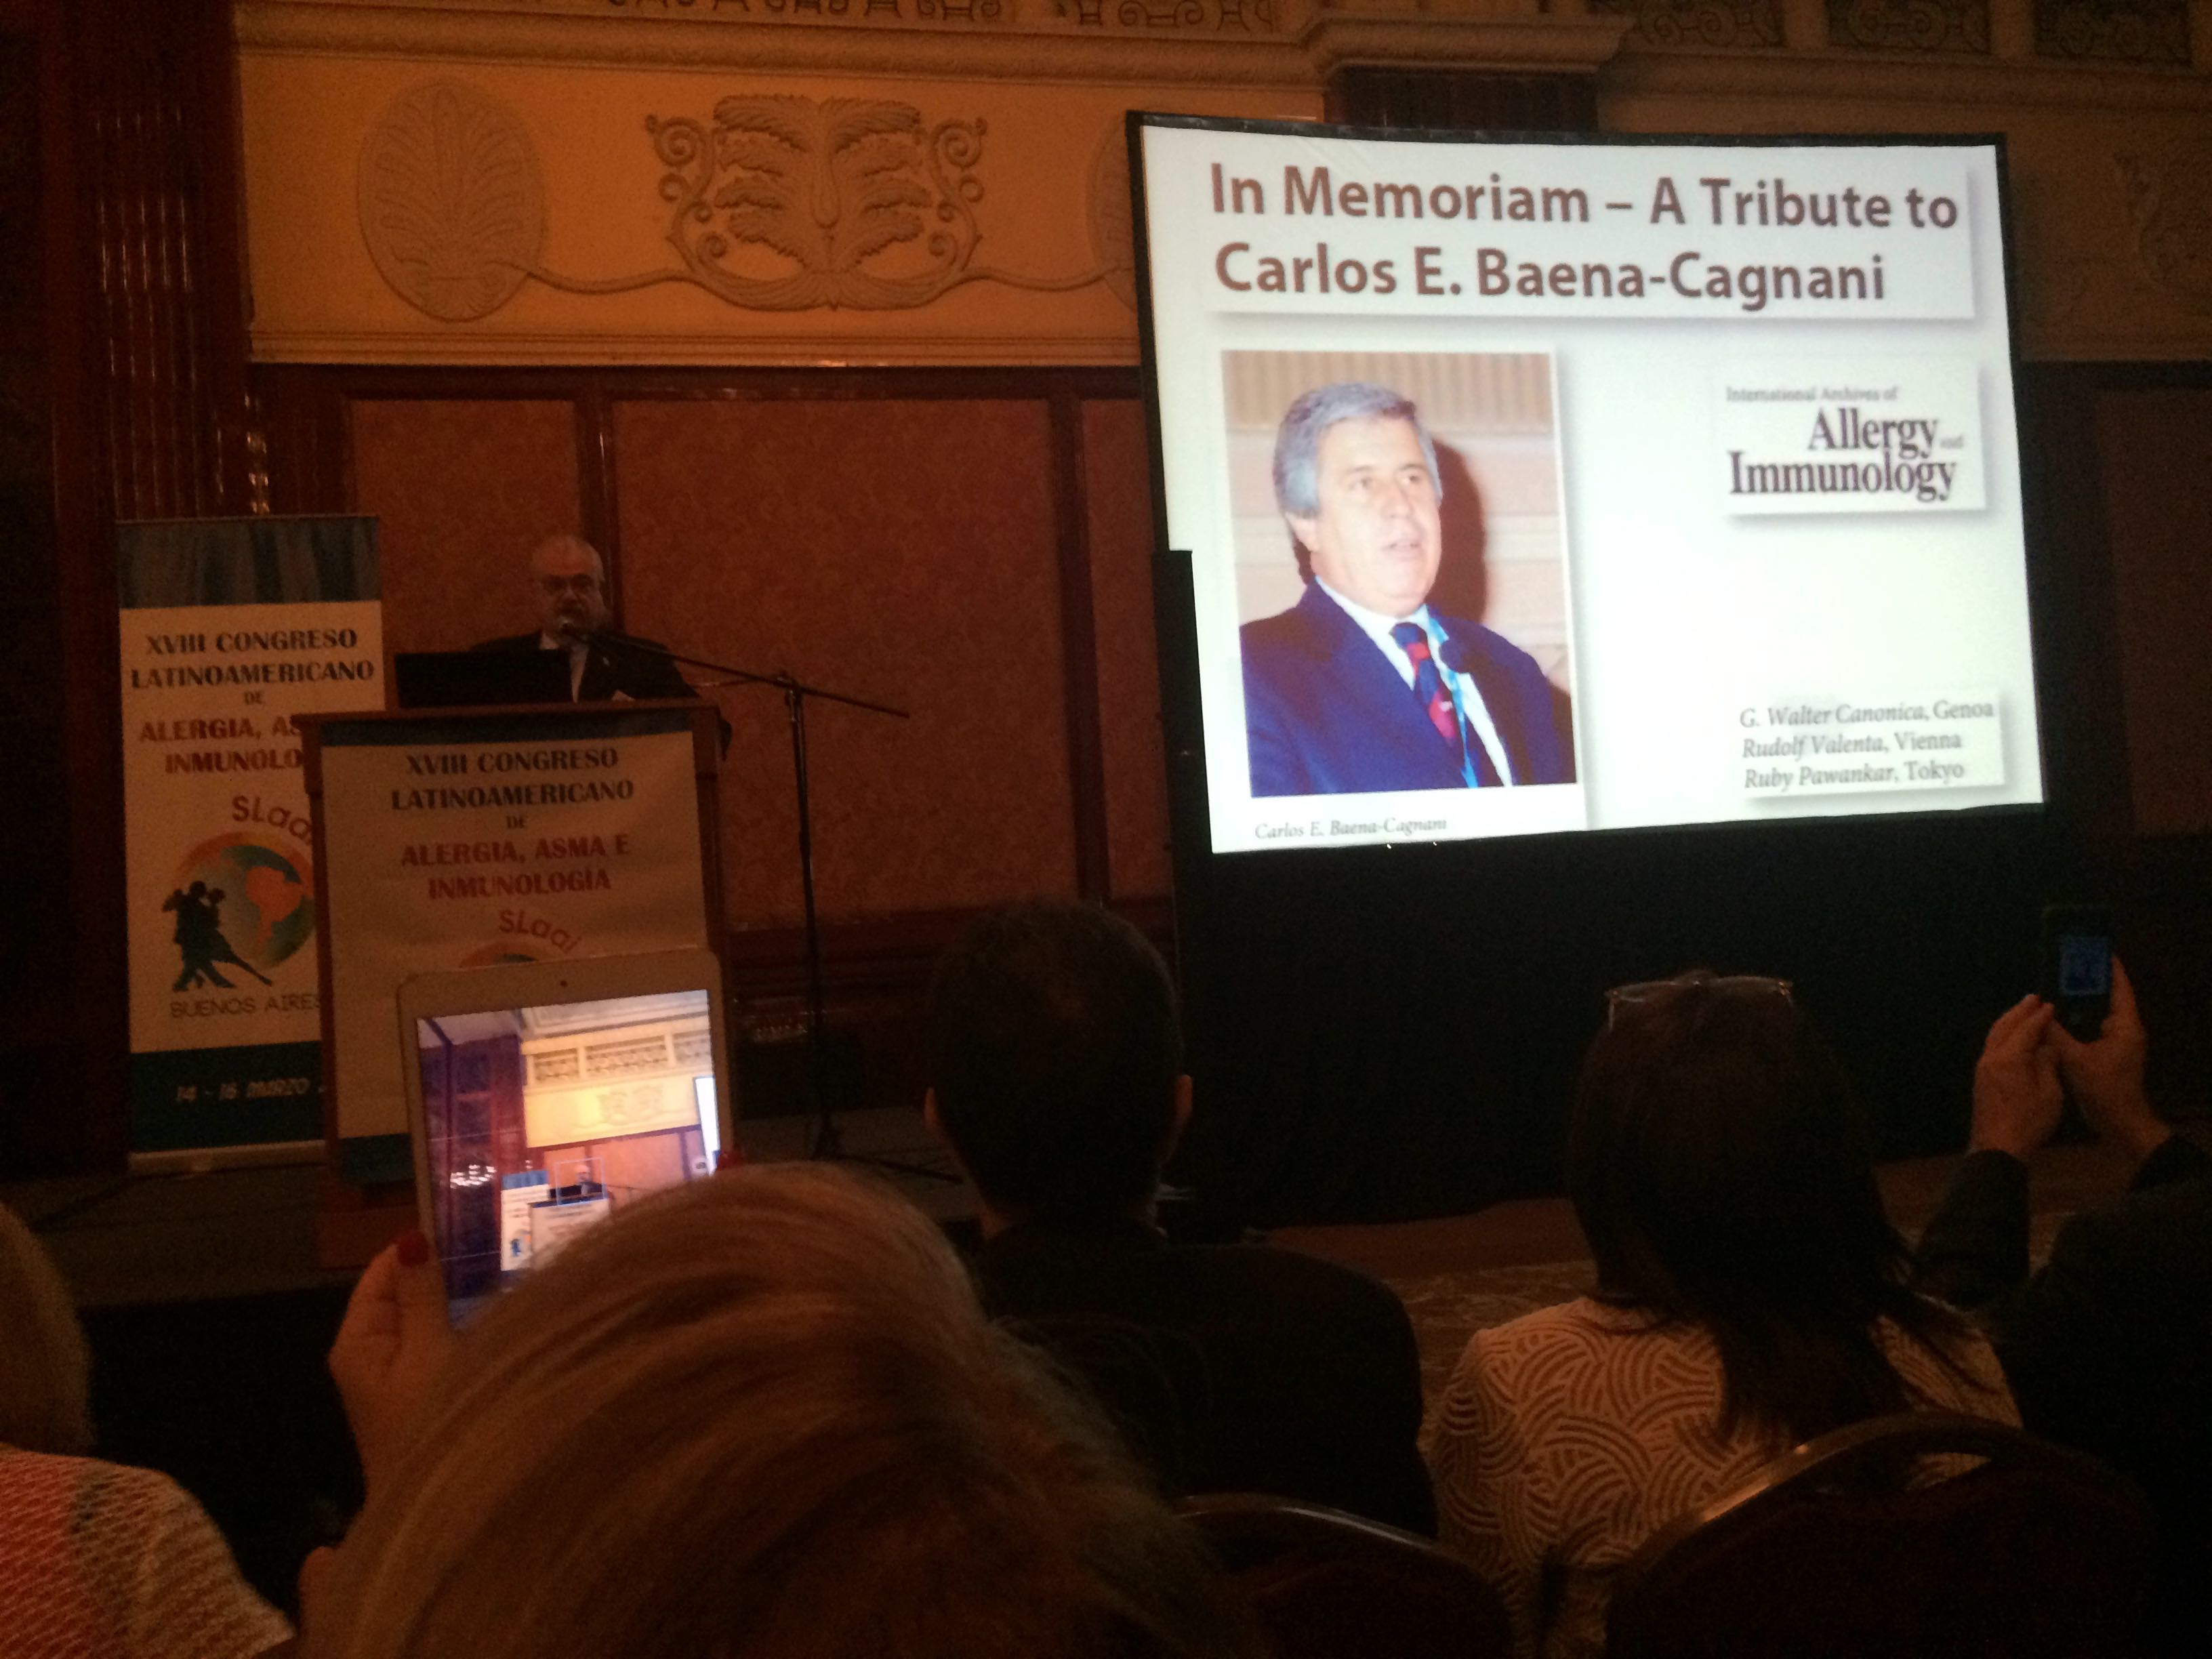 prof-g-walter-canonica-in-memorian-a-tribute-to-carlos-e-baena-cagnani-in-the-latin-american-congress-slaai2015